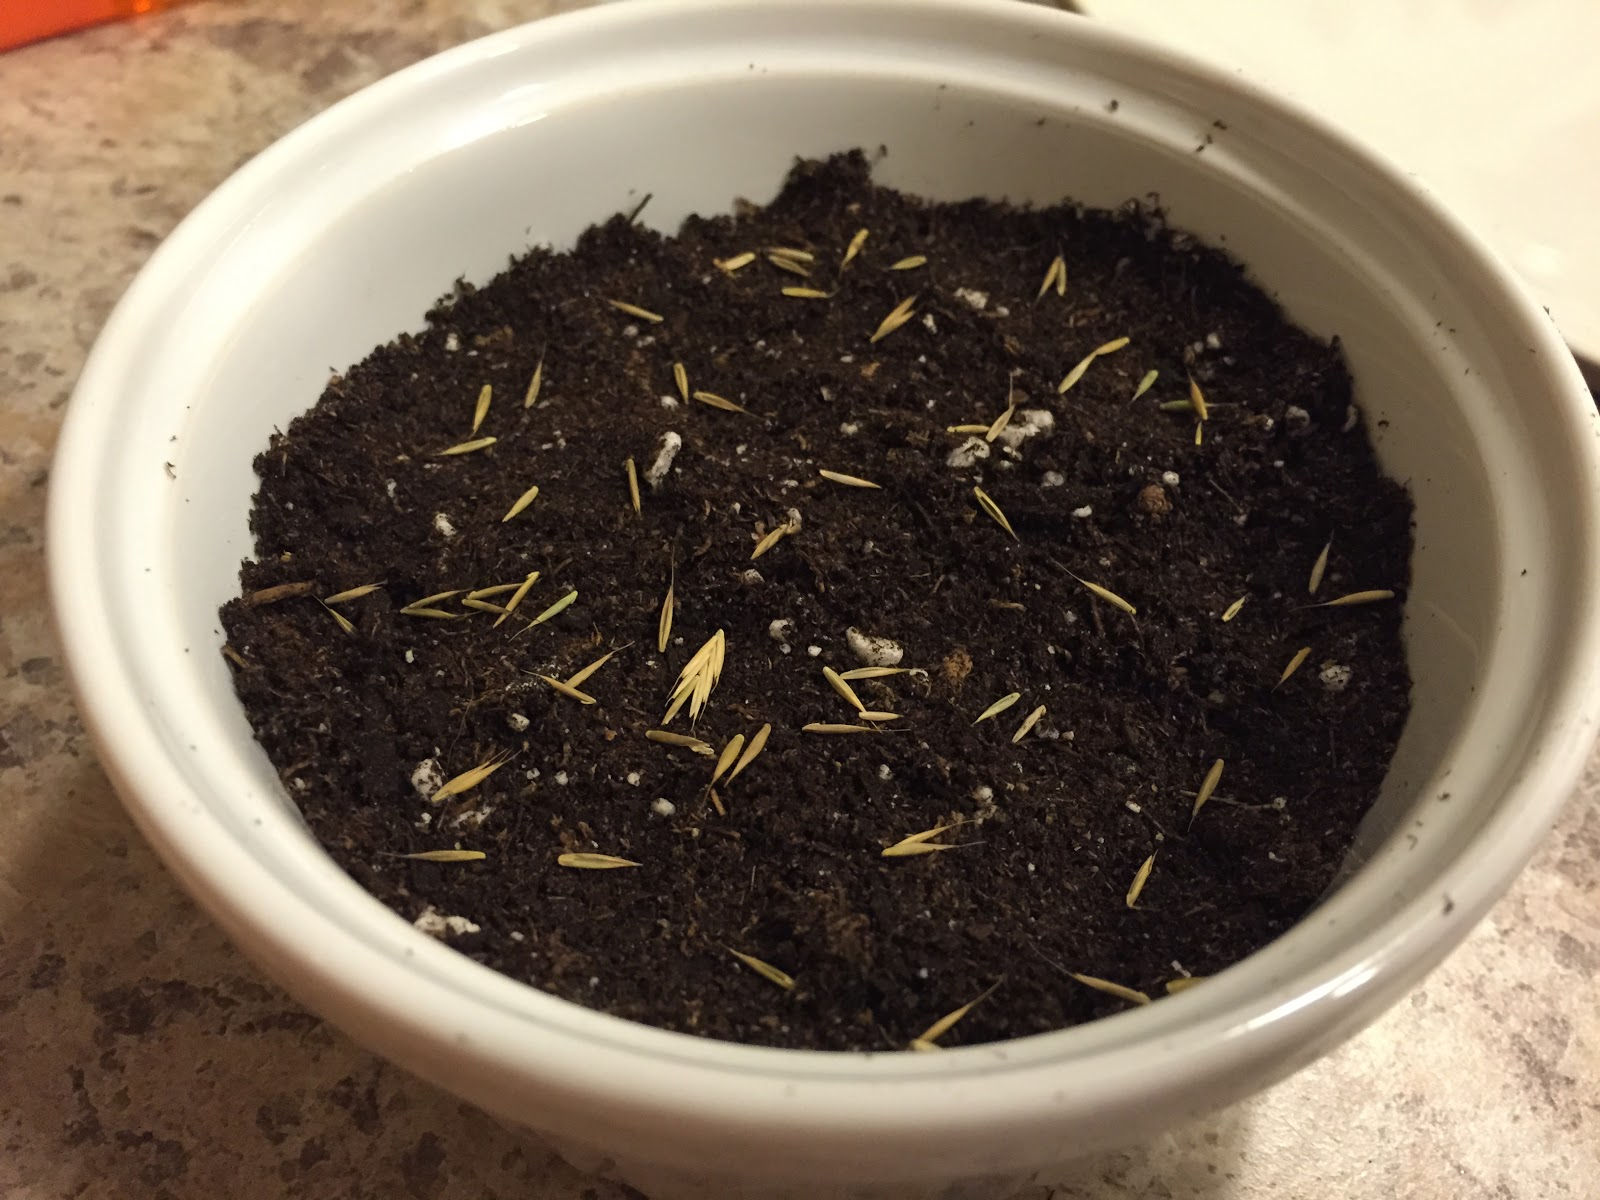 blue fescue seeds on soil